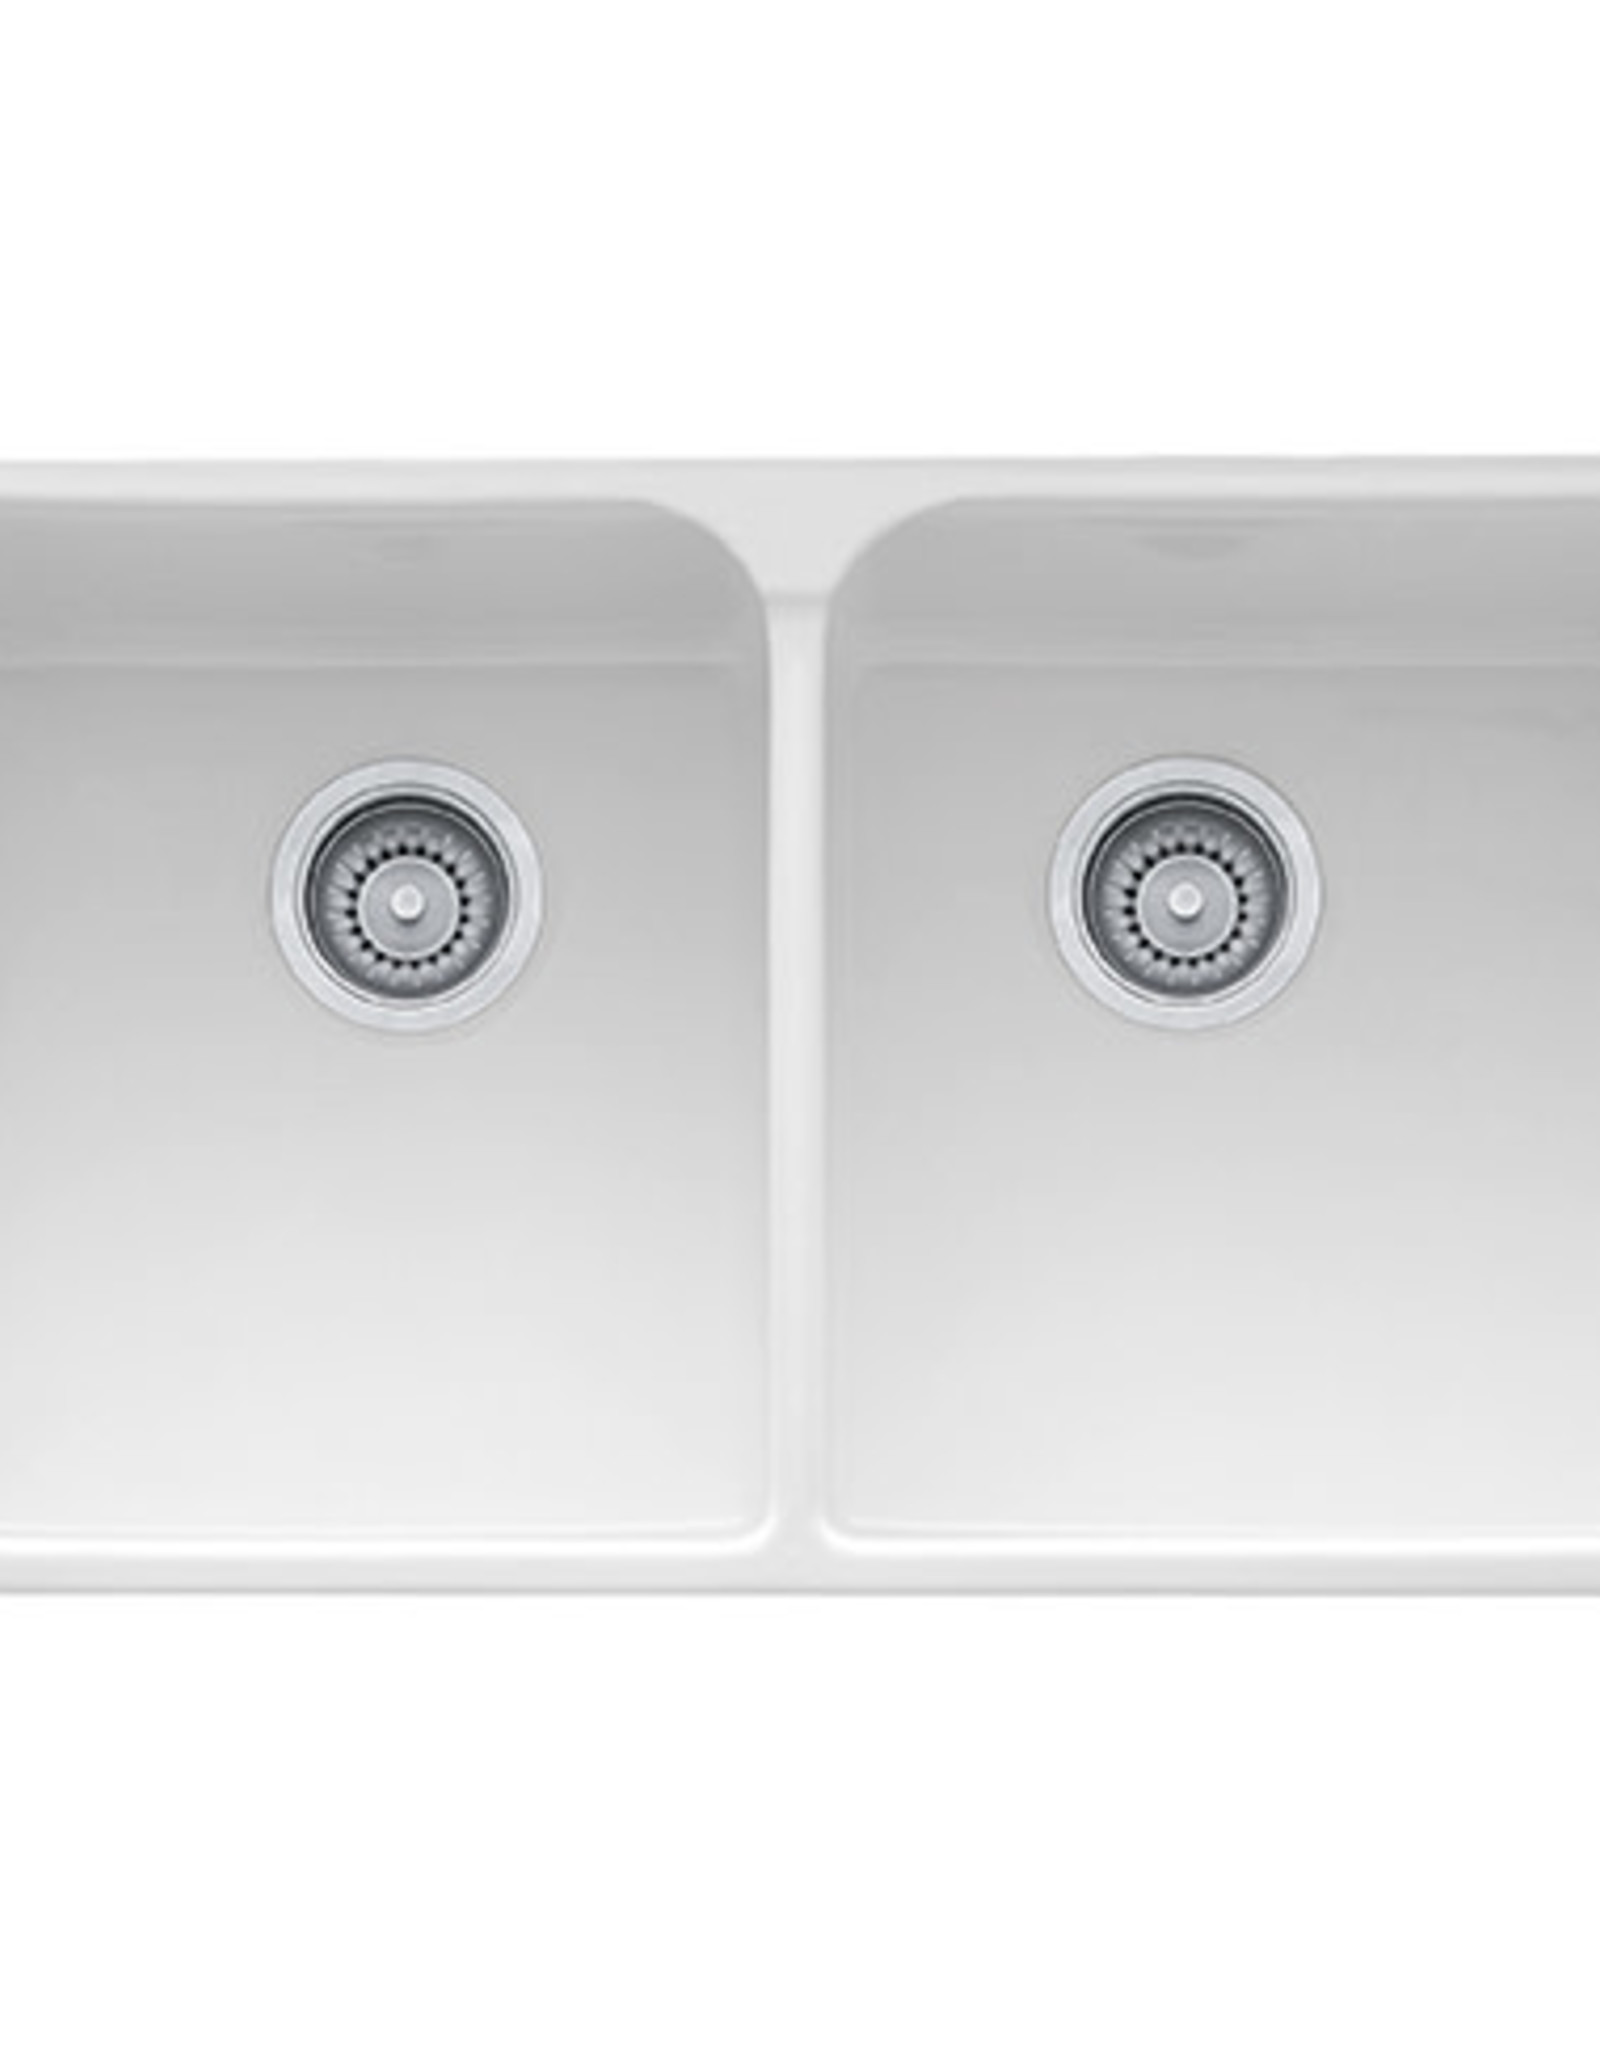 Franke MHK720-35WH Apron Front Undermount Fireclay White Sink